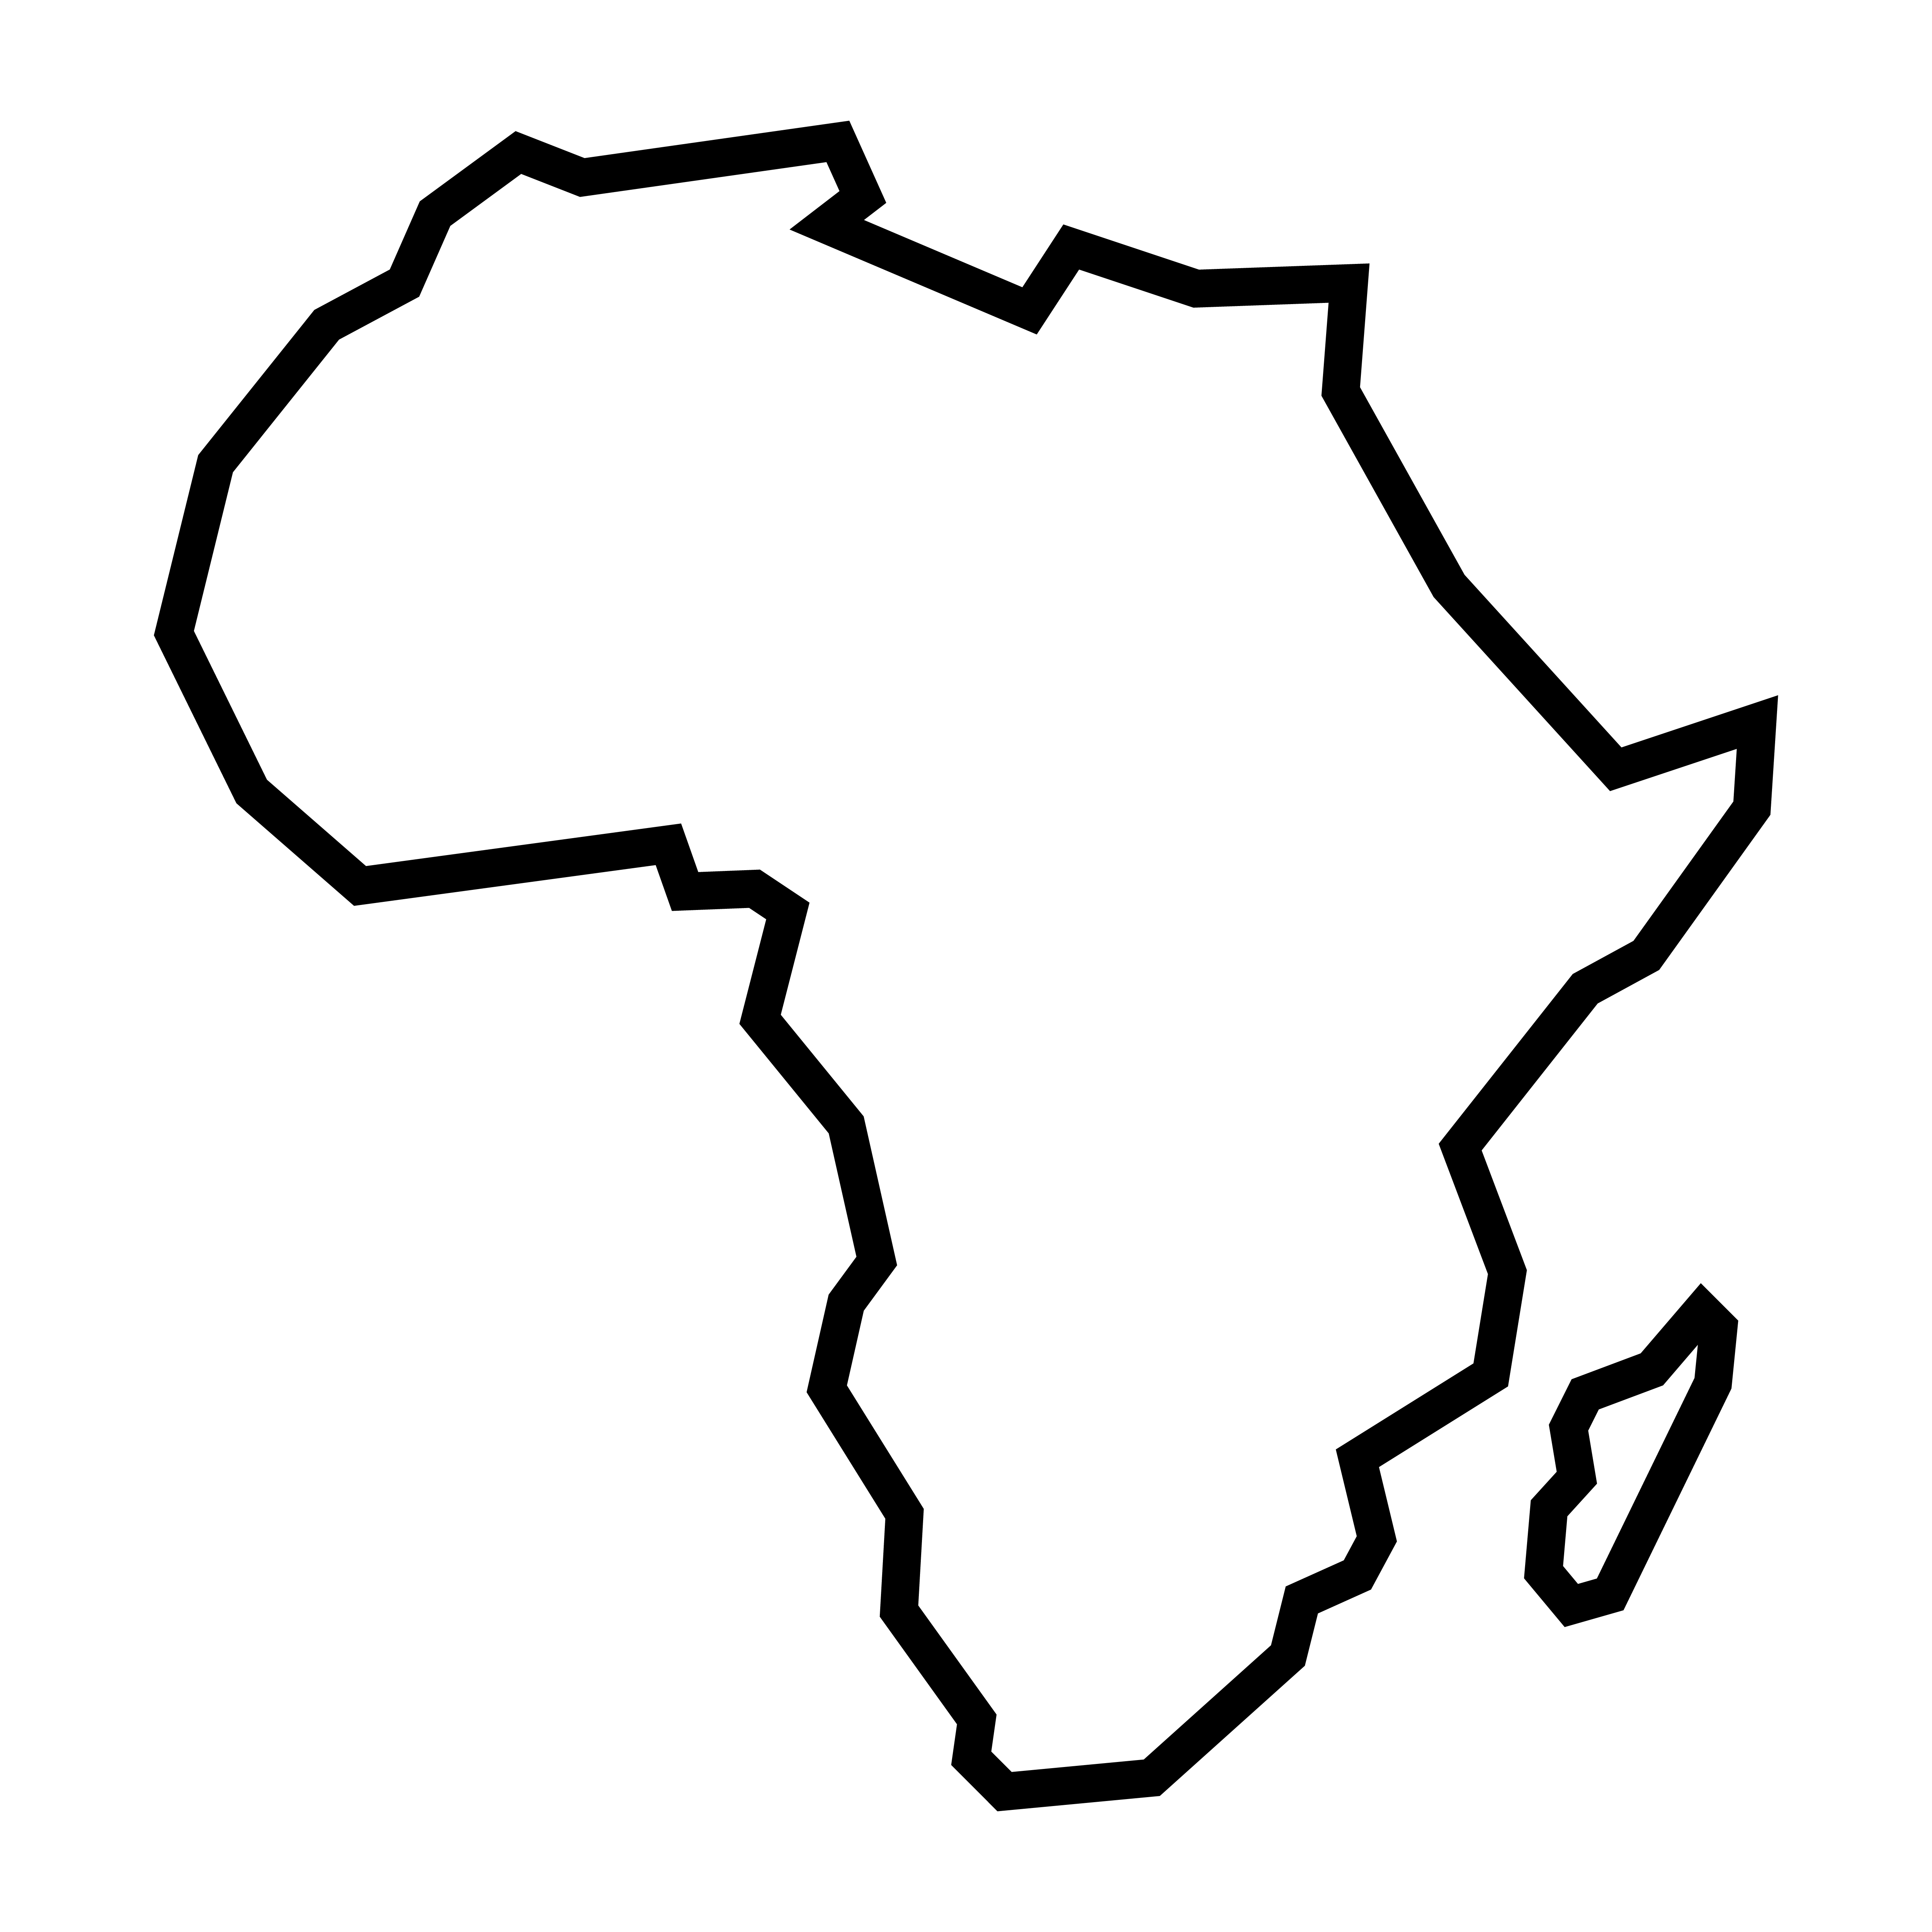 Africa Continent Outline Free Vector Art.